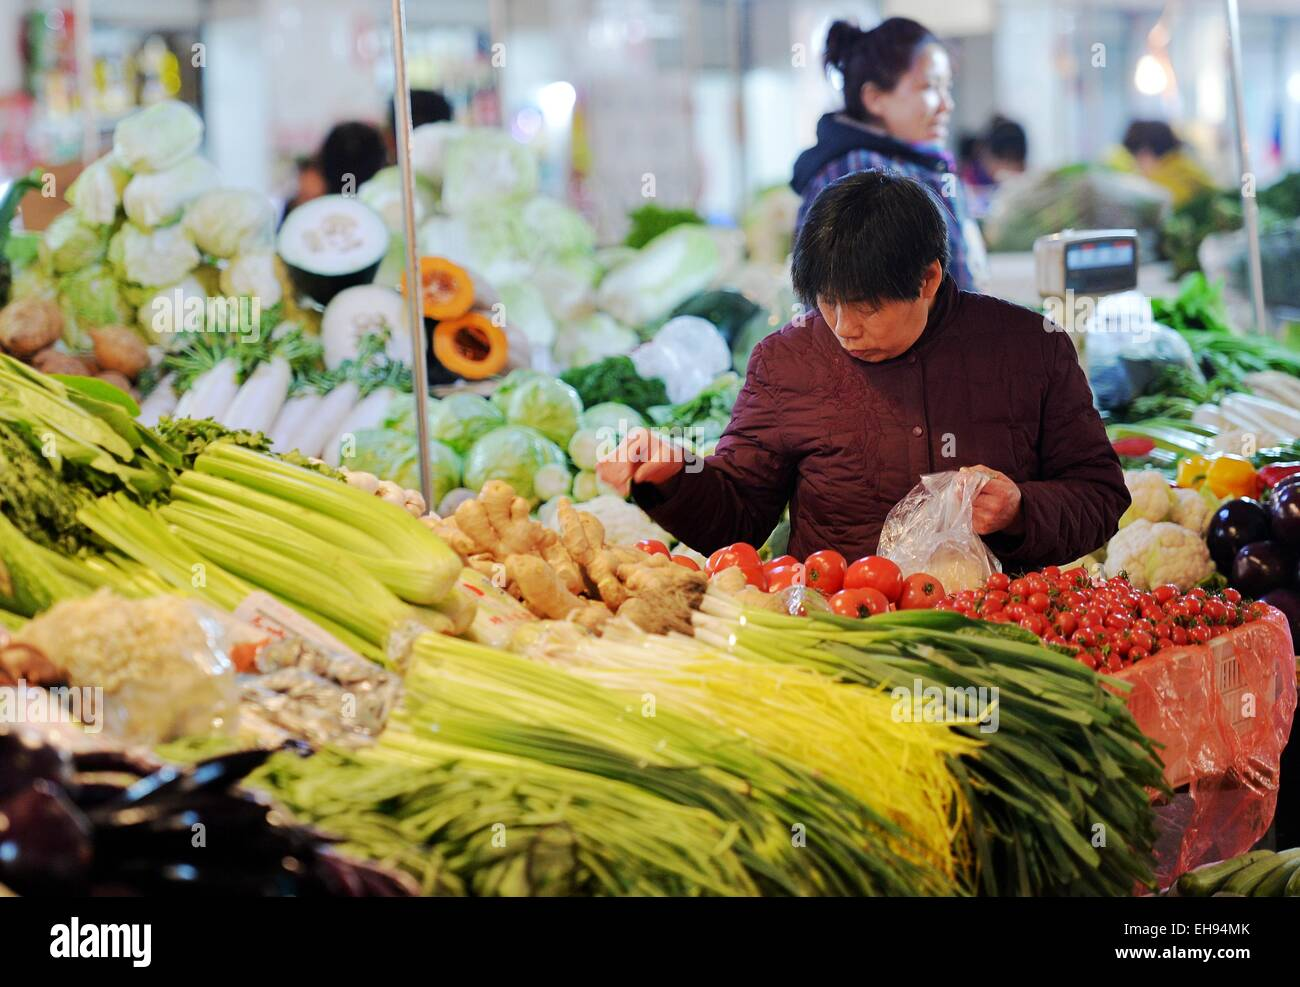 Shijiazhuang, China's Hebei Province. 9th Mar, 2015. A consumer selects vegetable at a farm product market in Shijiazhuang, Stock Photo